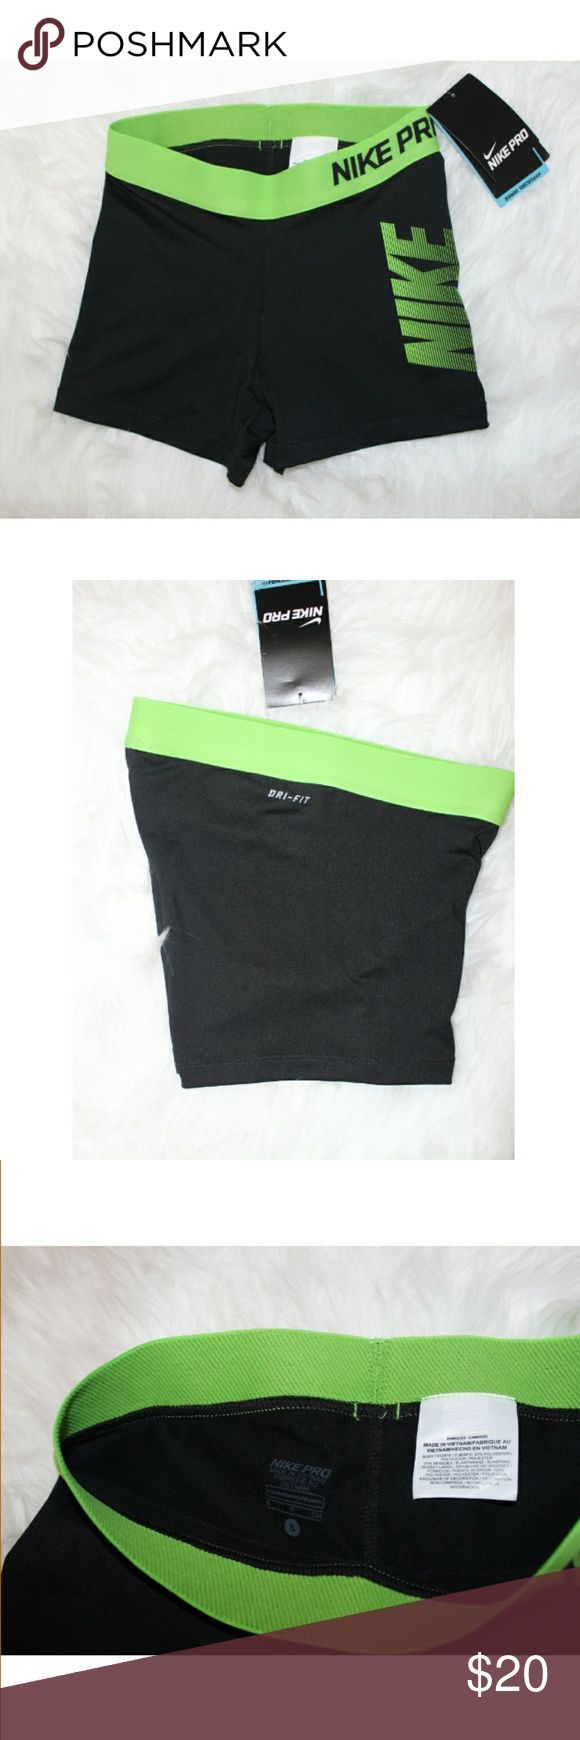 Nike Pro Compression Shorts The Nike Pro Women's Training Shorts deliver ultimate comfort as a base layer or your one performance layer. Sweat-wicking fabric keeps you dry and comfortable for the gym or gameday. Nike Shorts